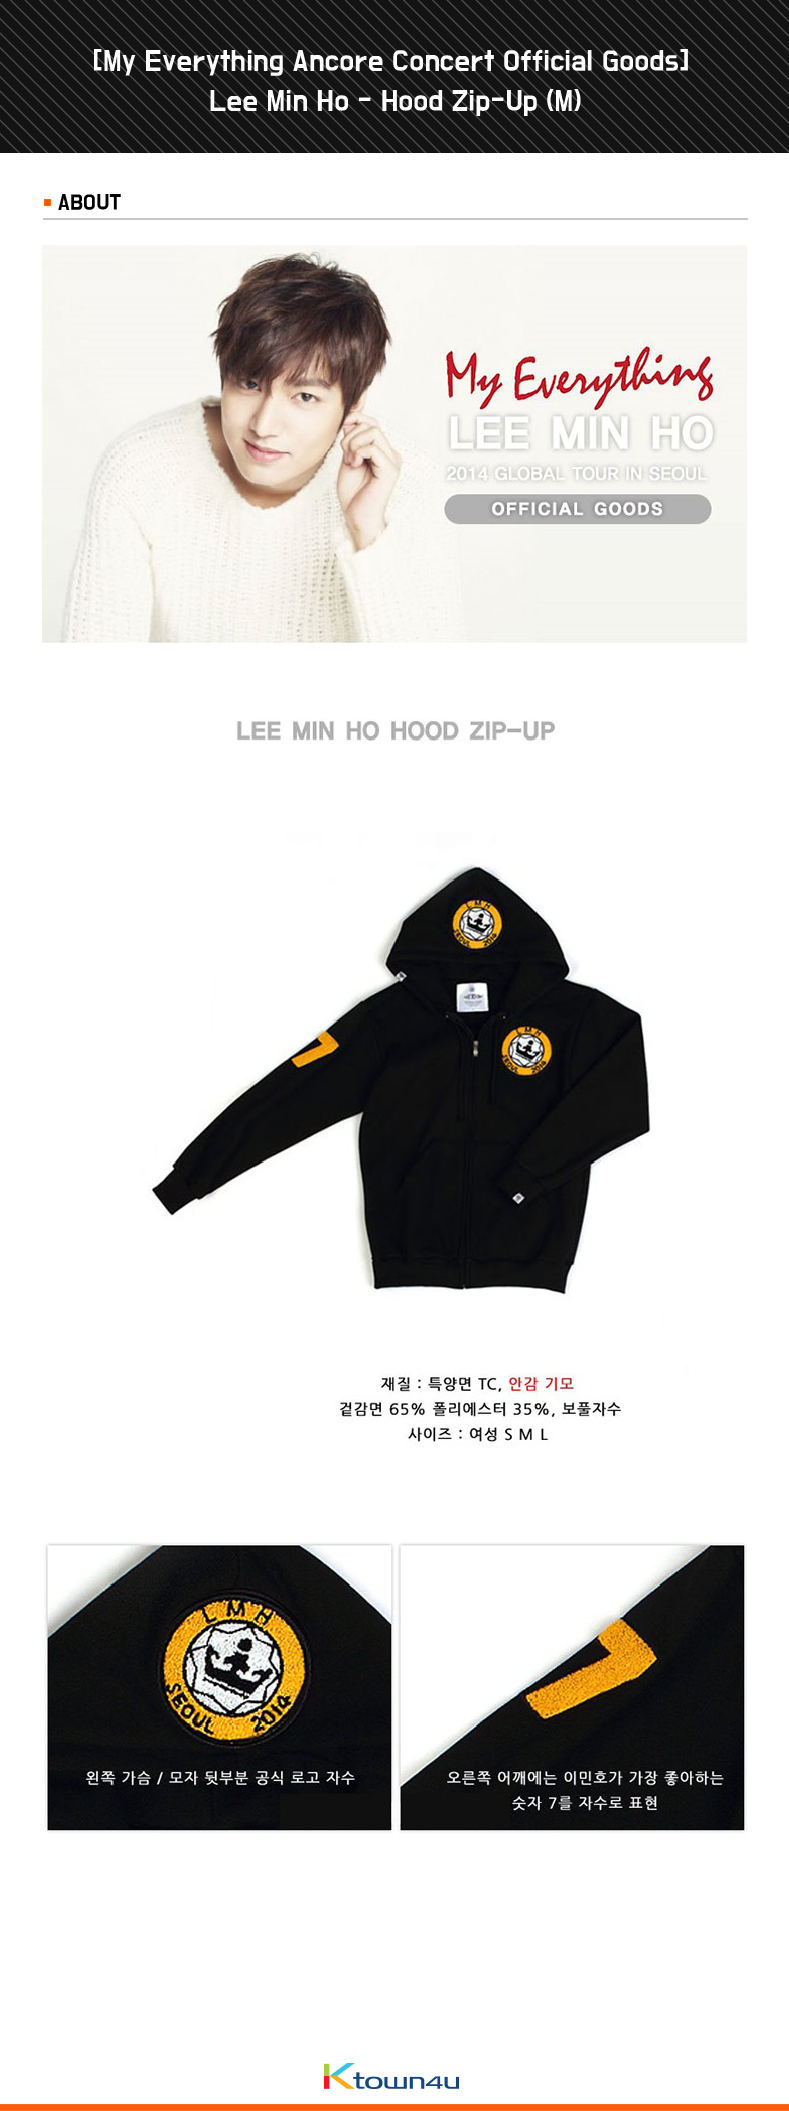 [My Everything Ancore Concert Official Goods] Lee Min Ho - Hood Zip-Up (M)